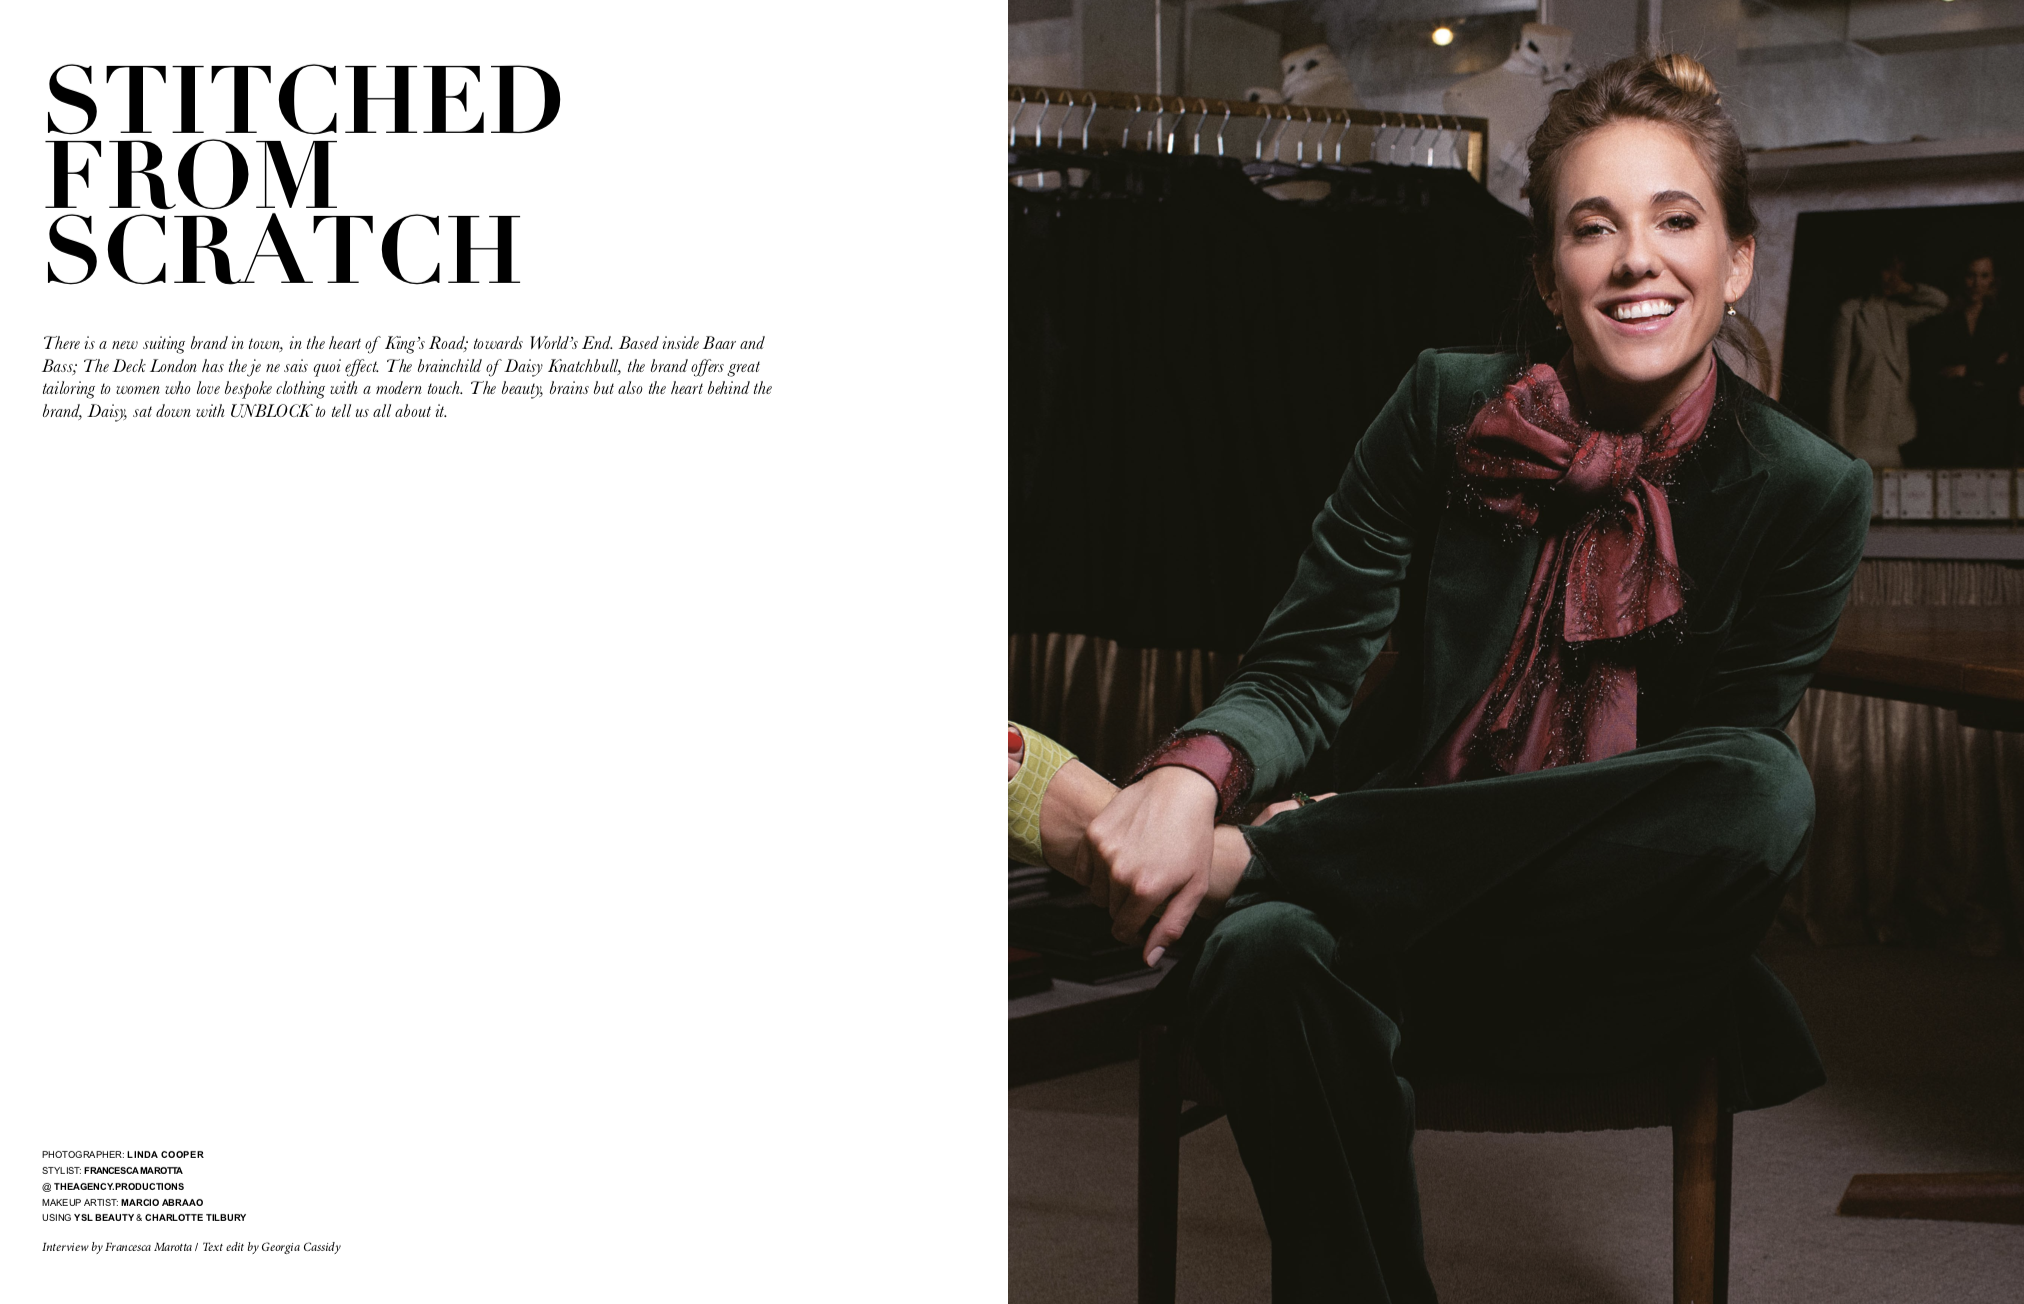 UNBLOCK: Stitched from Scratch - There is a new suiting brand in town, in the heart of the King's Road. The Deck London has the je ne sais quoi effect.